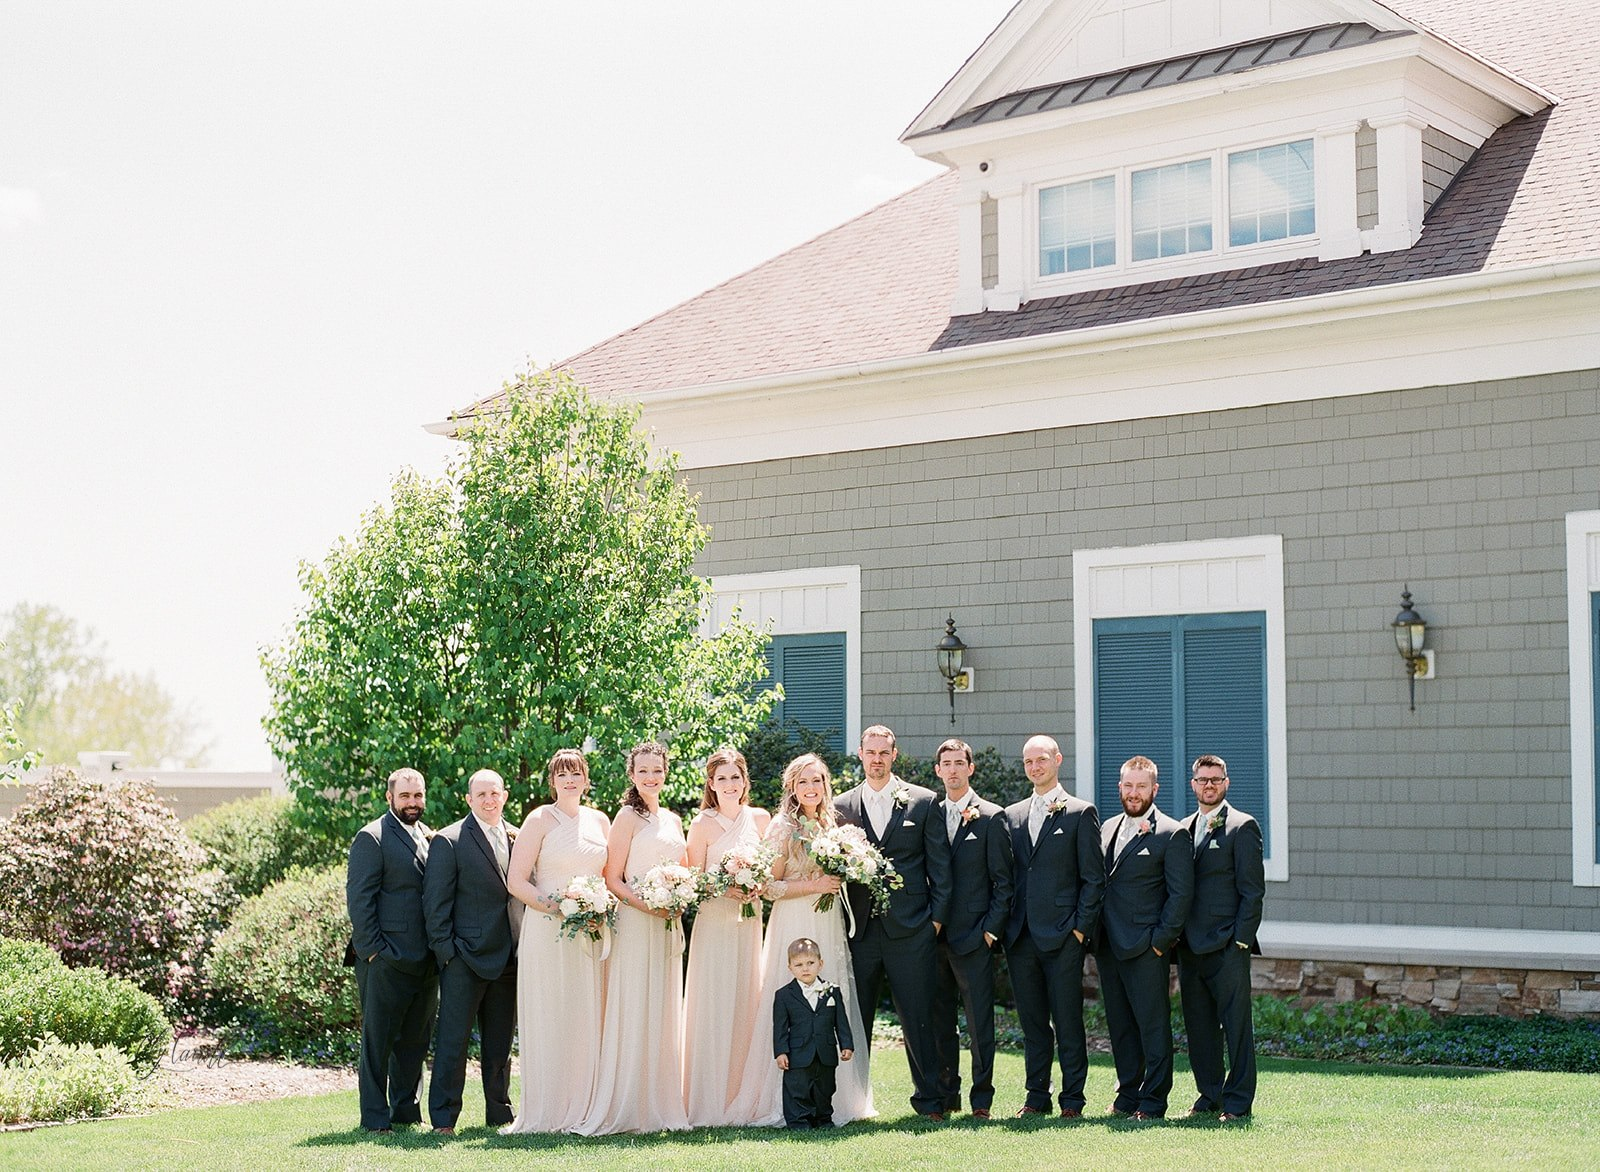 Sarah___Jake___Wedding_Film-163.jpg